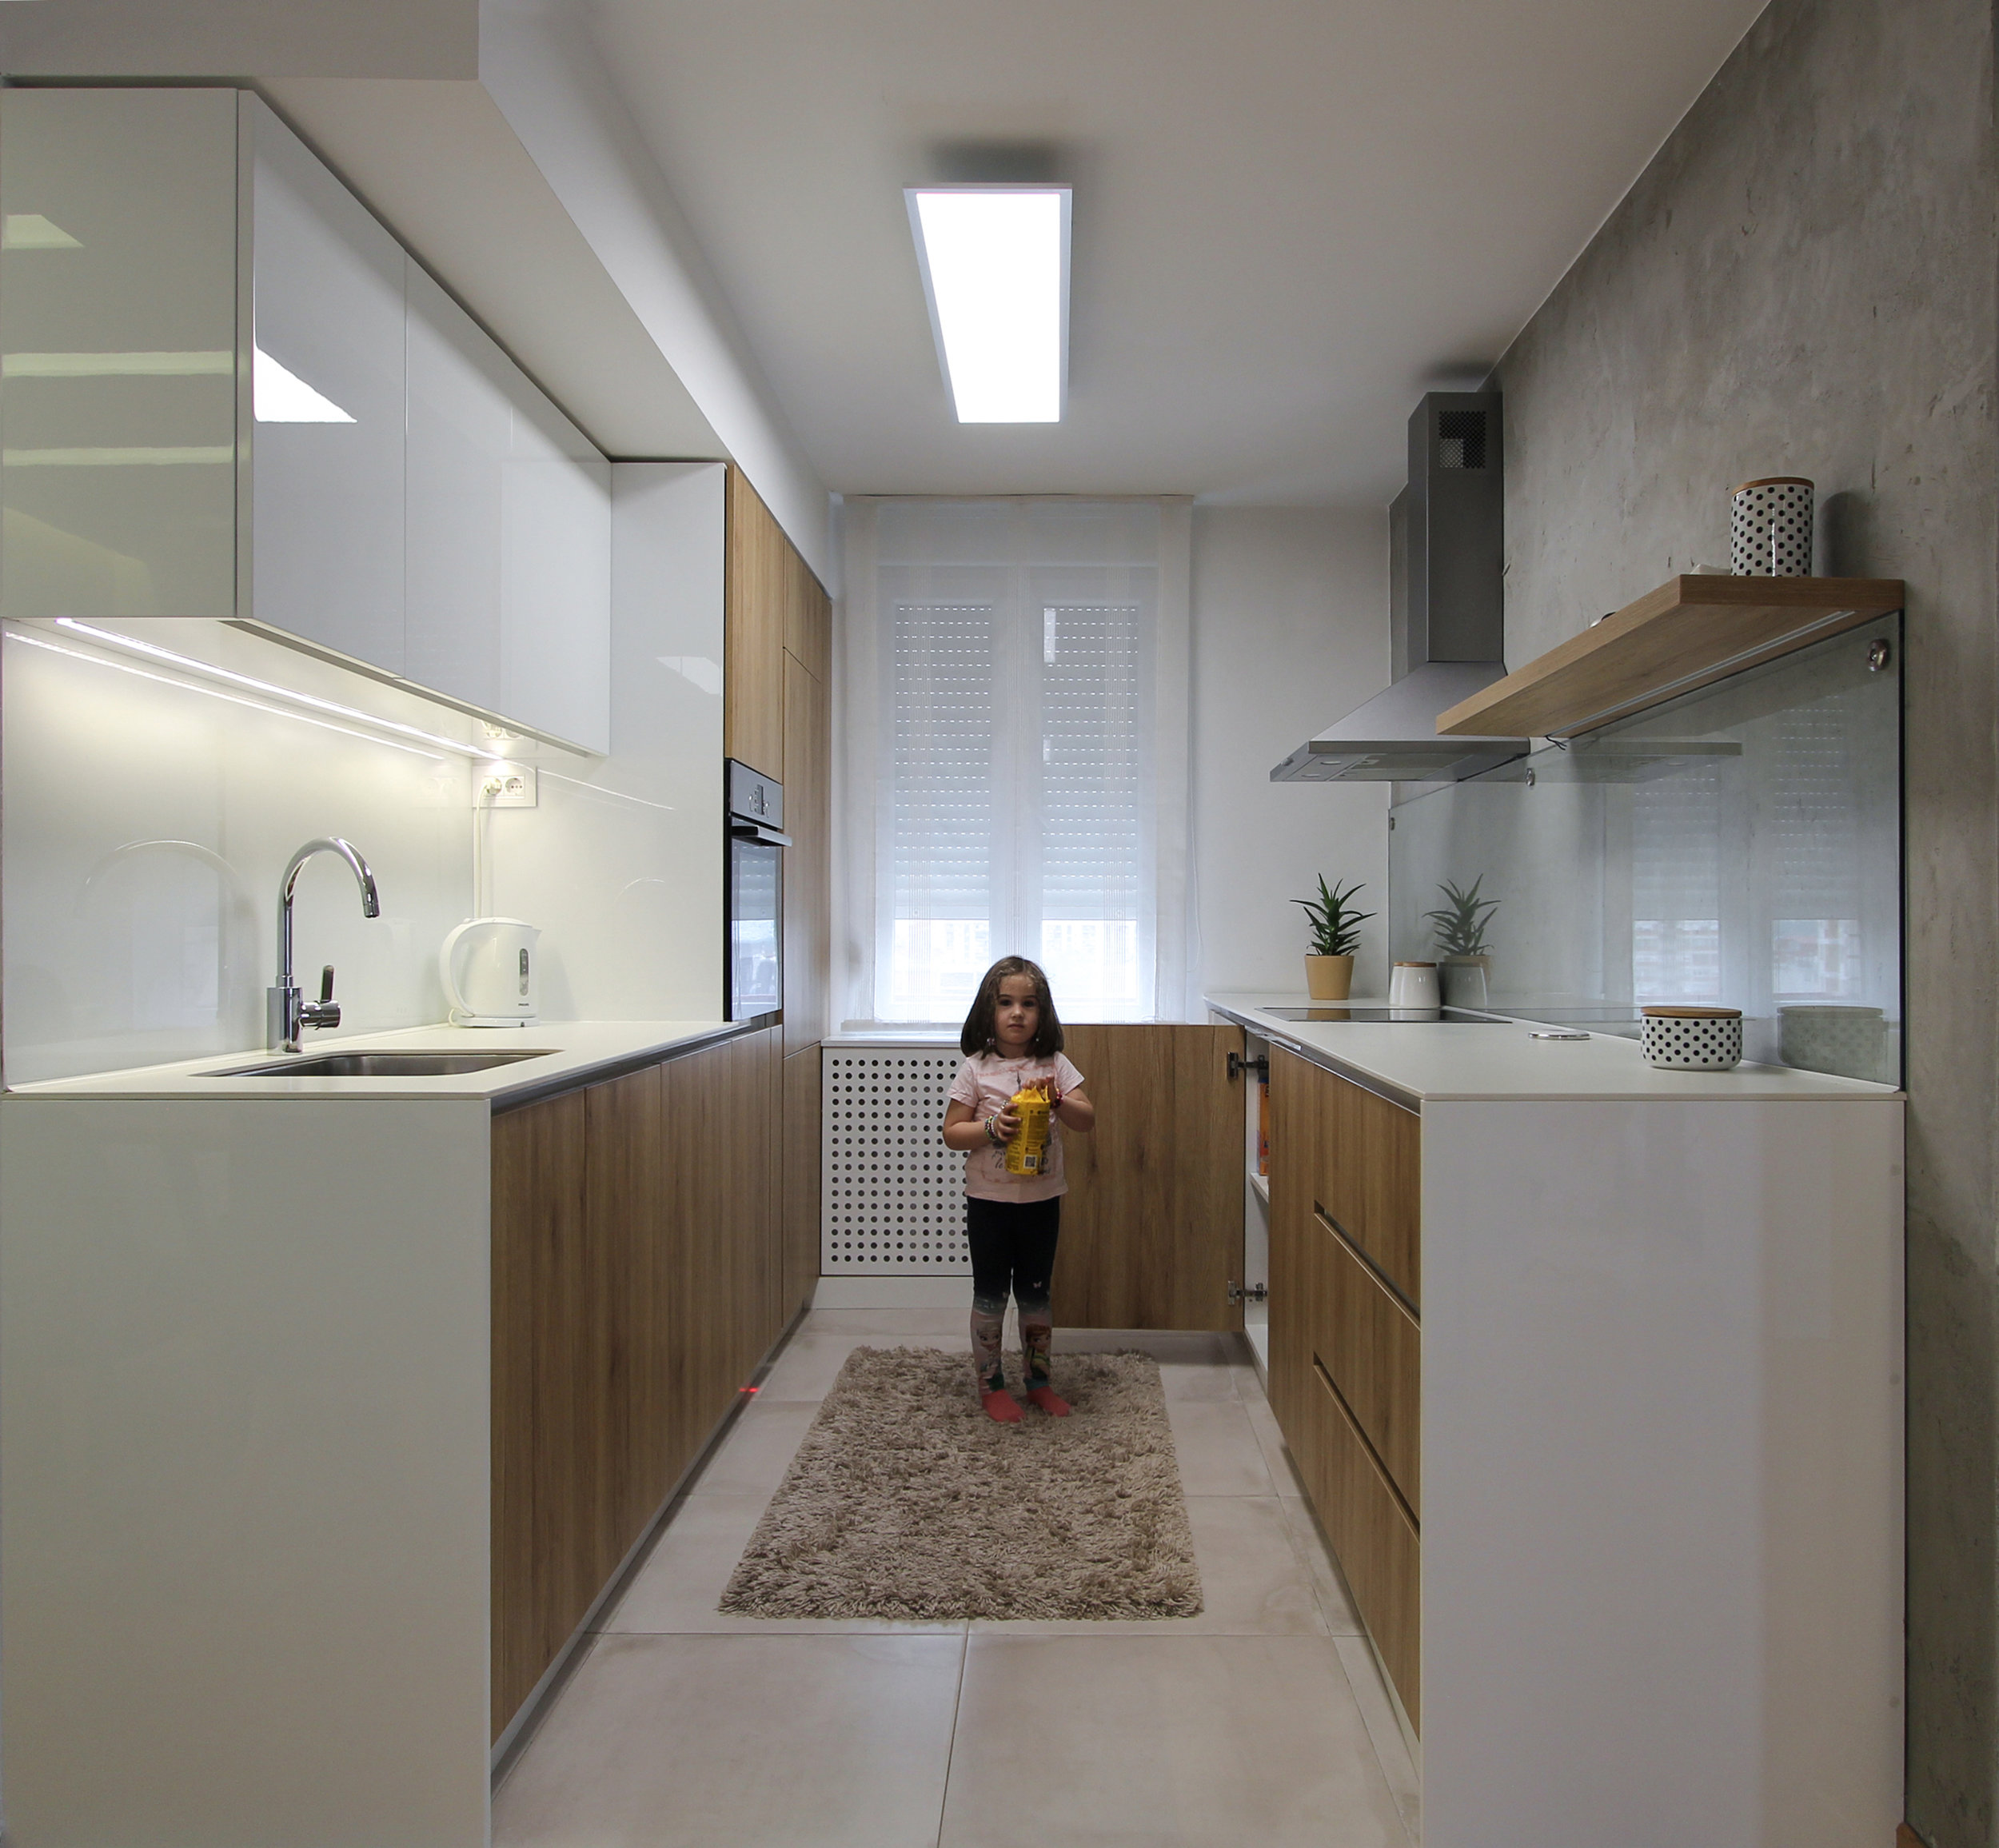 Apartment in Nis / Architects: Studio Koncept